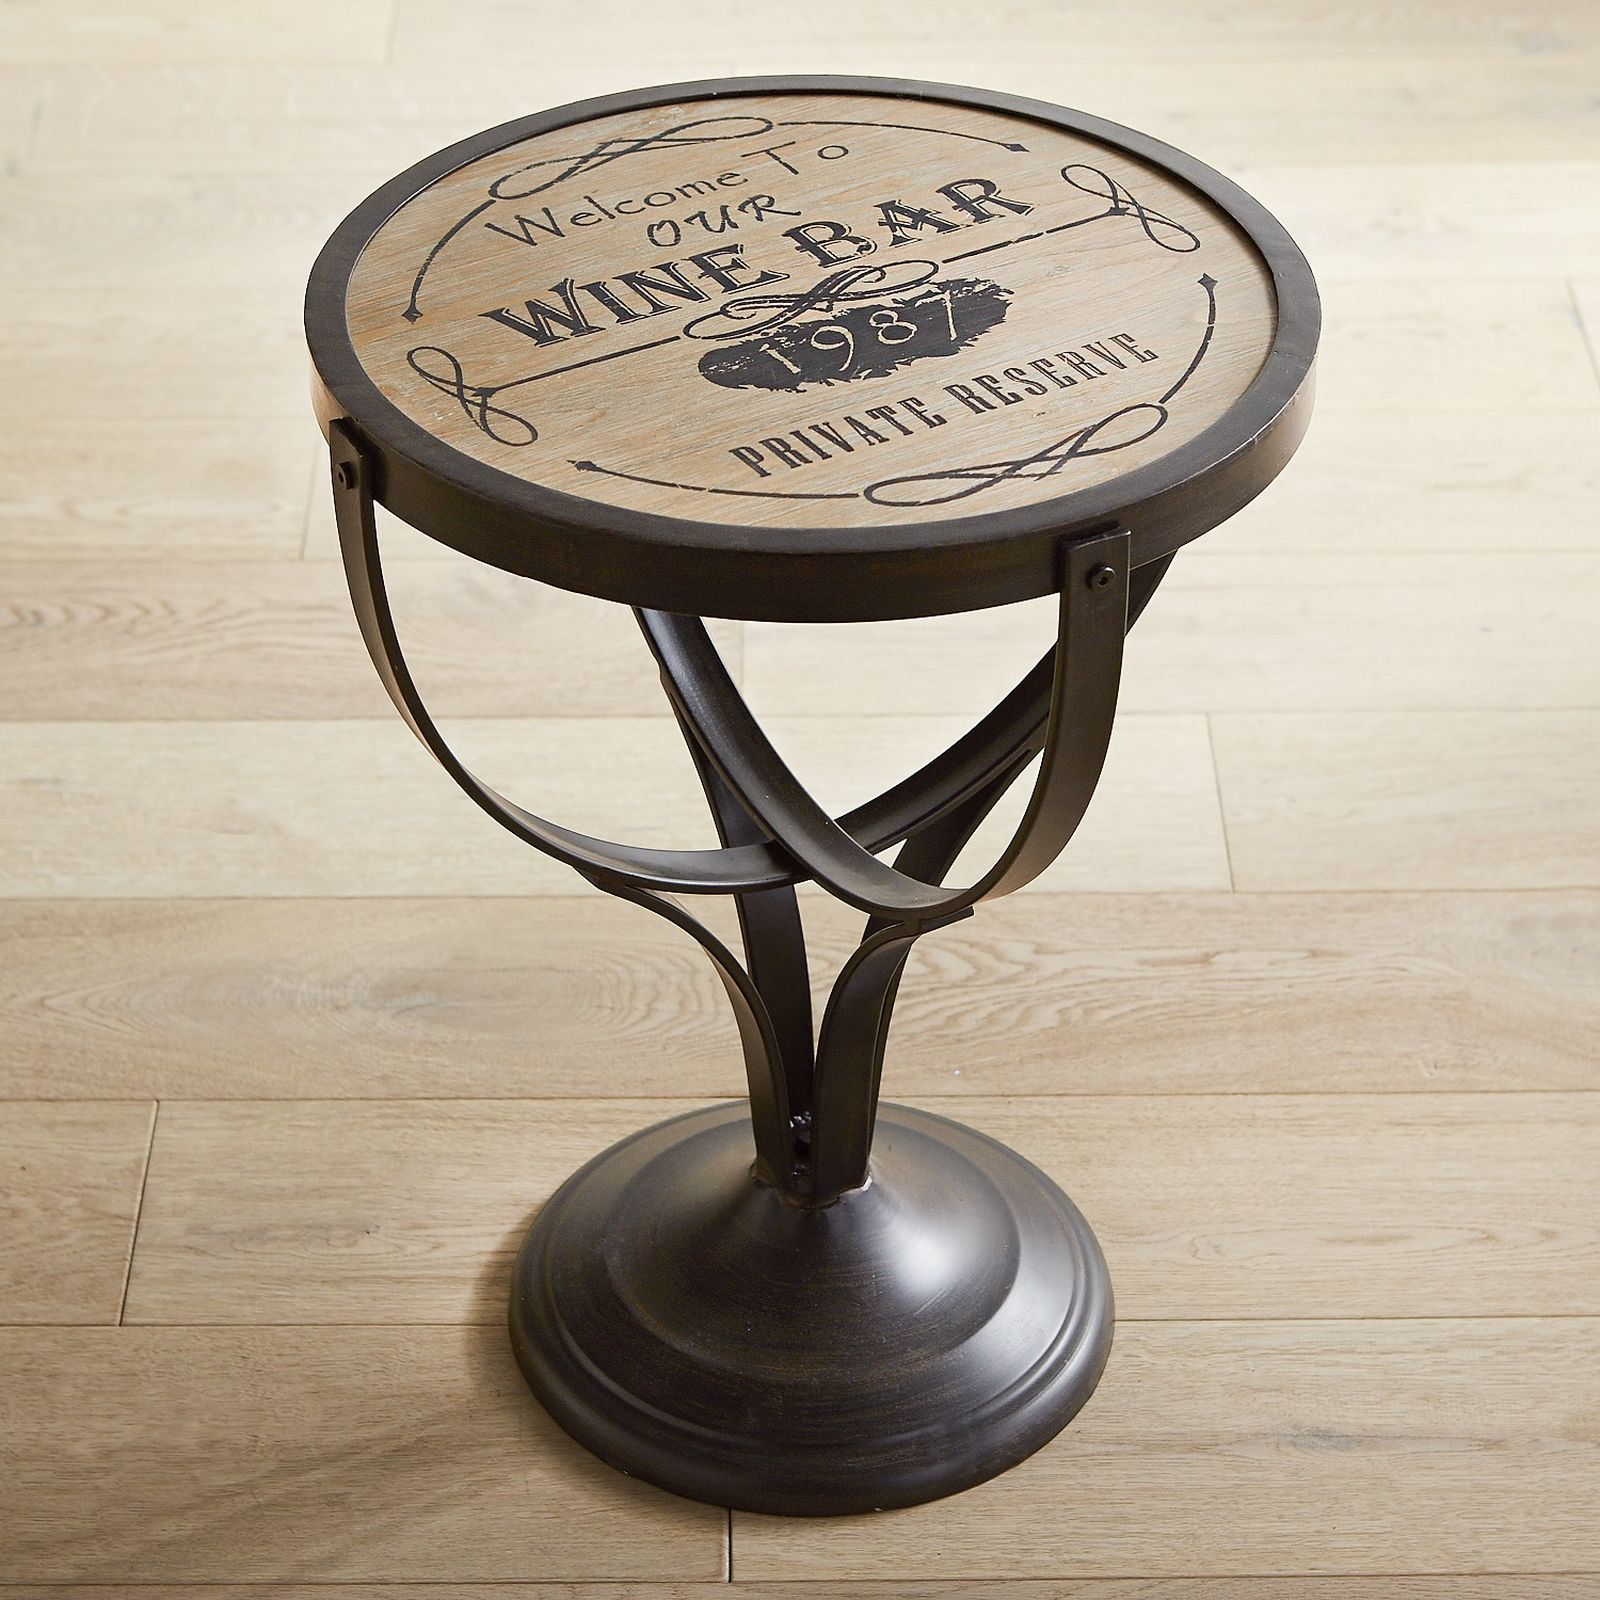 round accent table size the lucky design multipurpose indoor side target knurl tiffany nightstand lamps black metal trunk all weather garden furniture outdoor lounge clearance